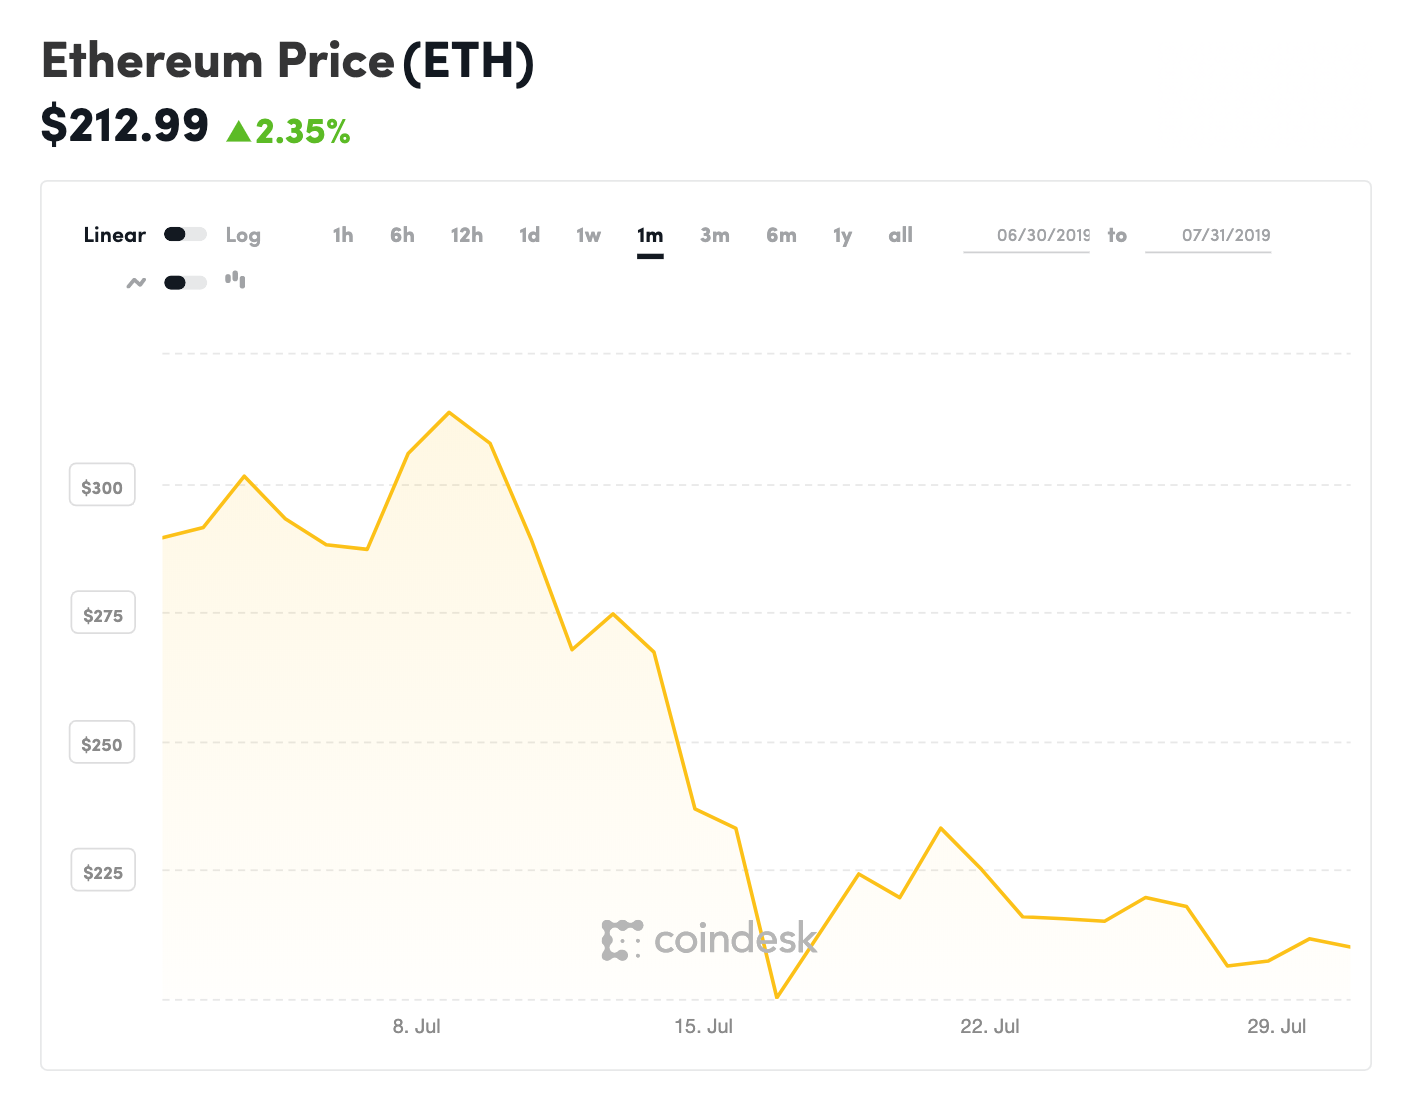 coindesk-ETH-chart-2019-07-31-1.png